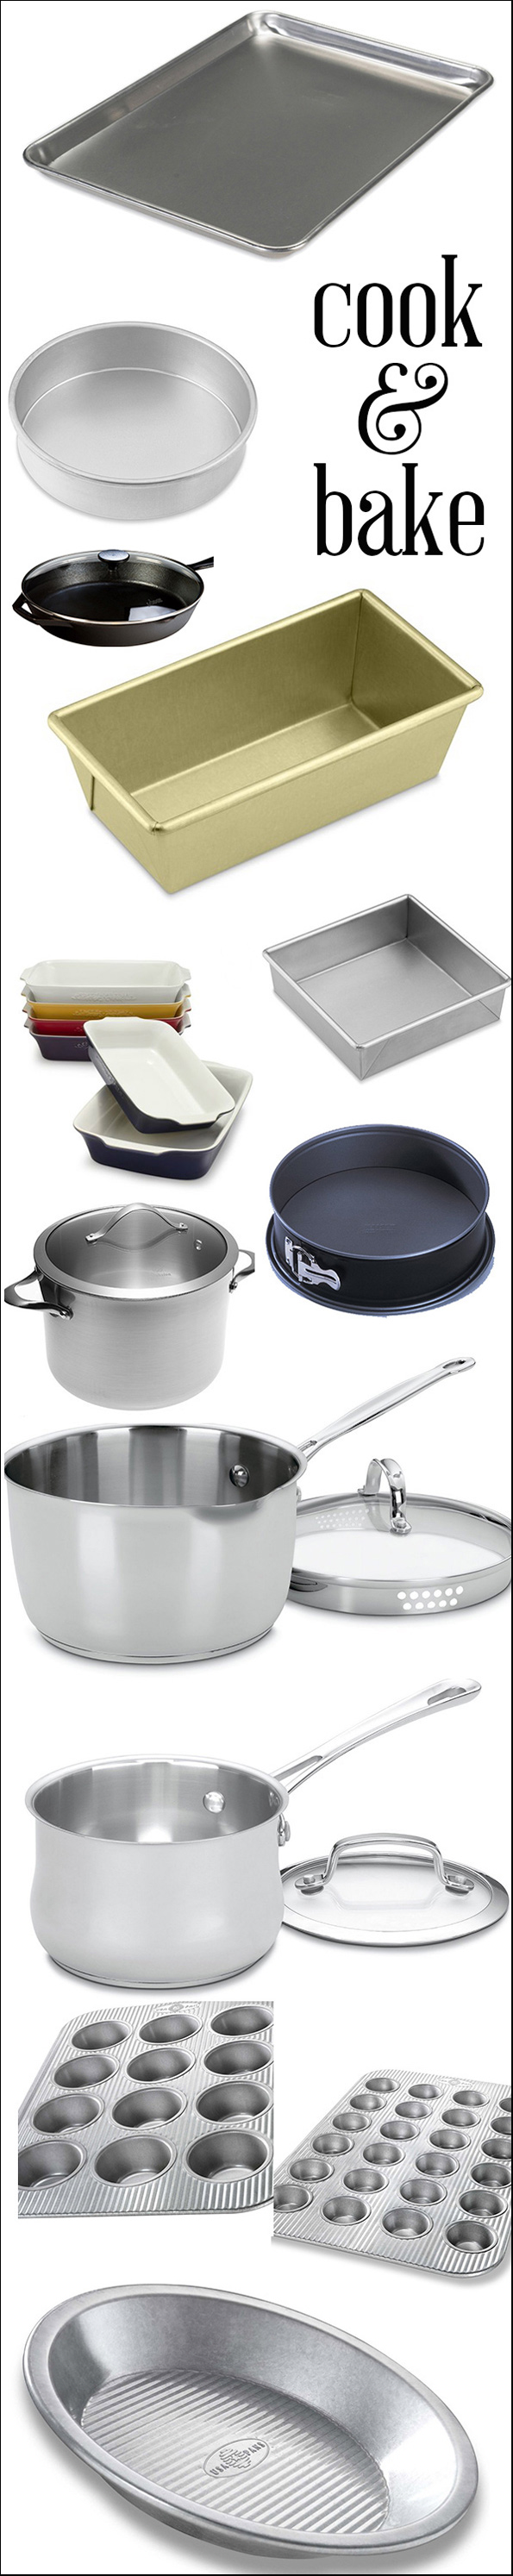 Essential Cooking and Baking Equipment: Cook & Bake